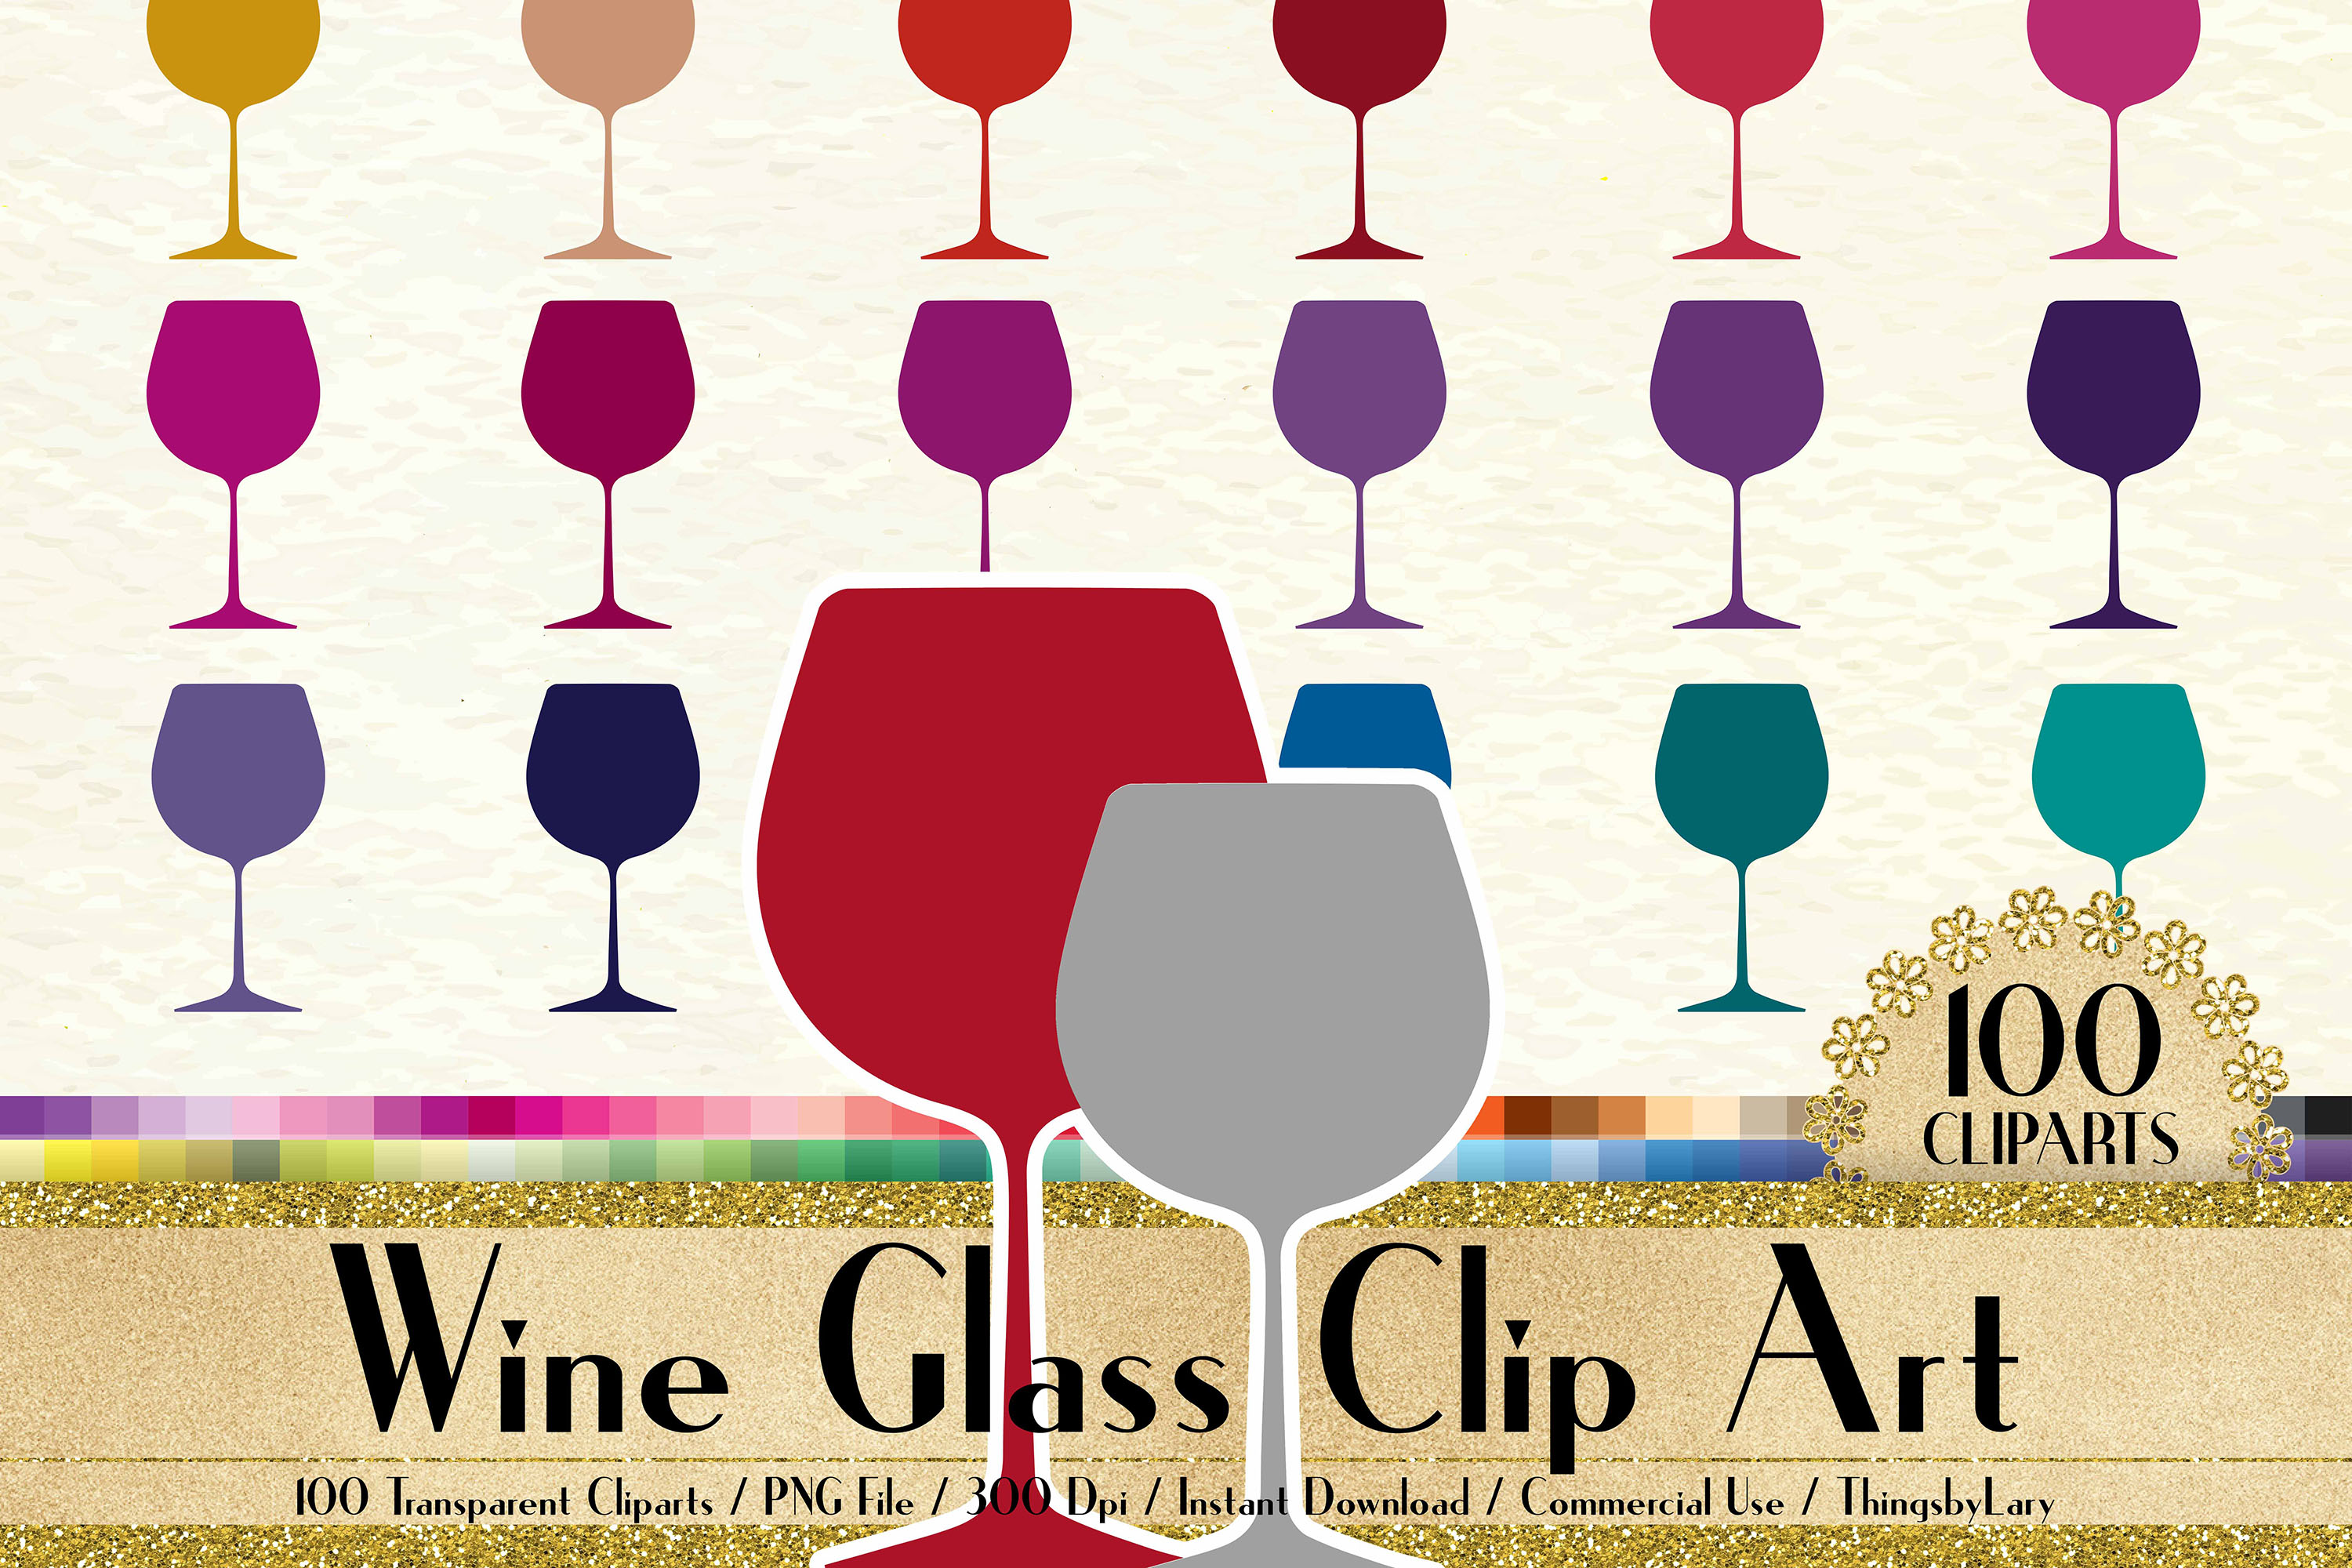 100 wine glass clip arts new year clip art party clip art example image